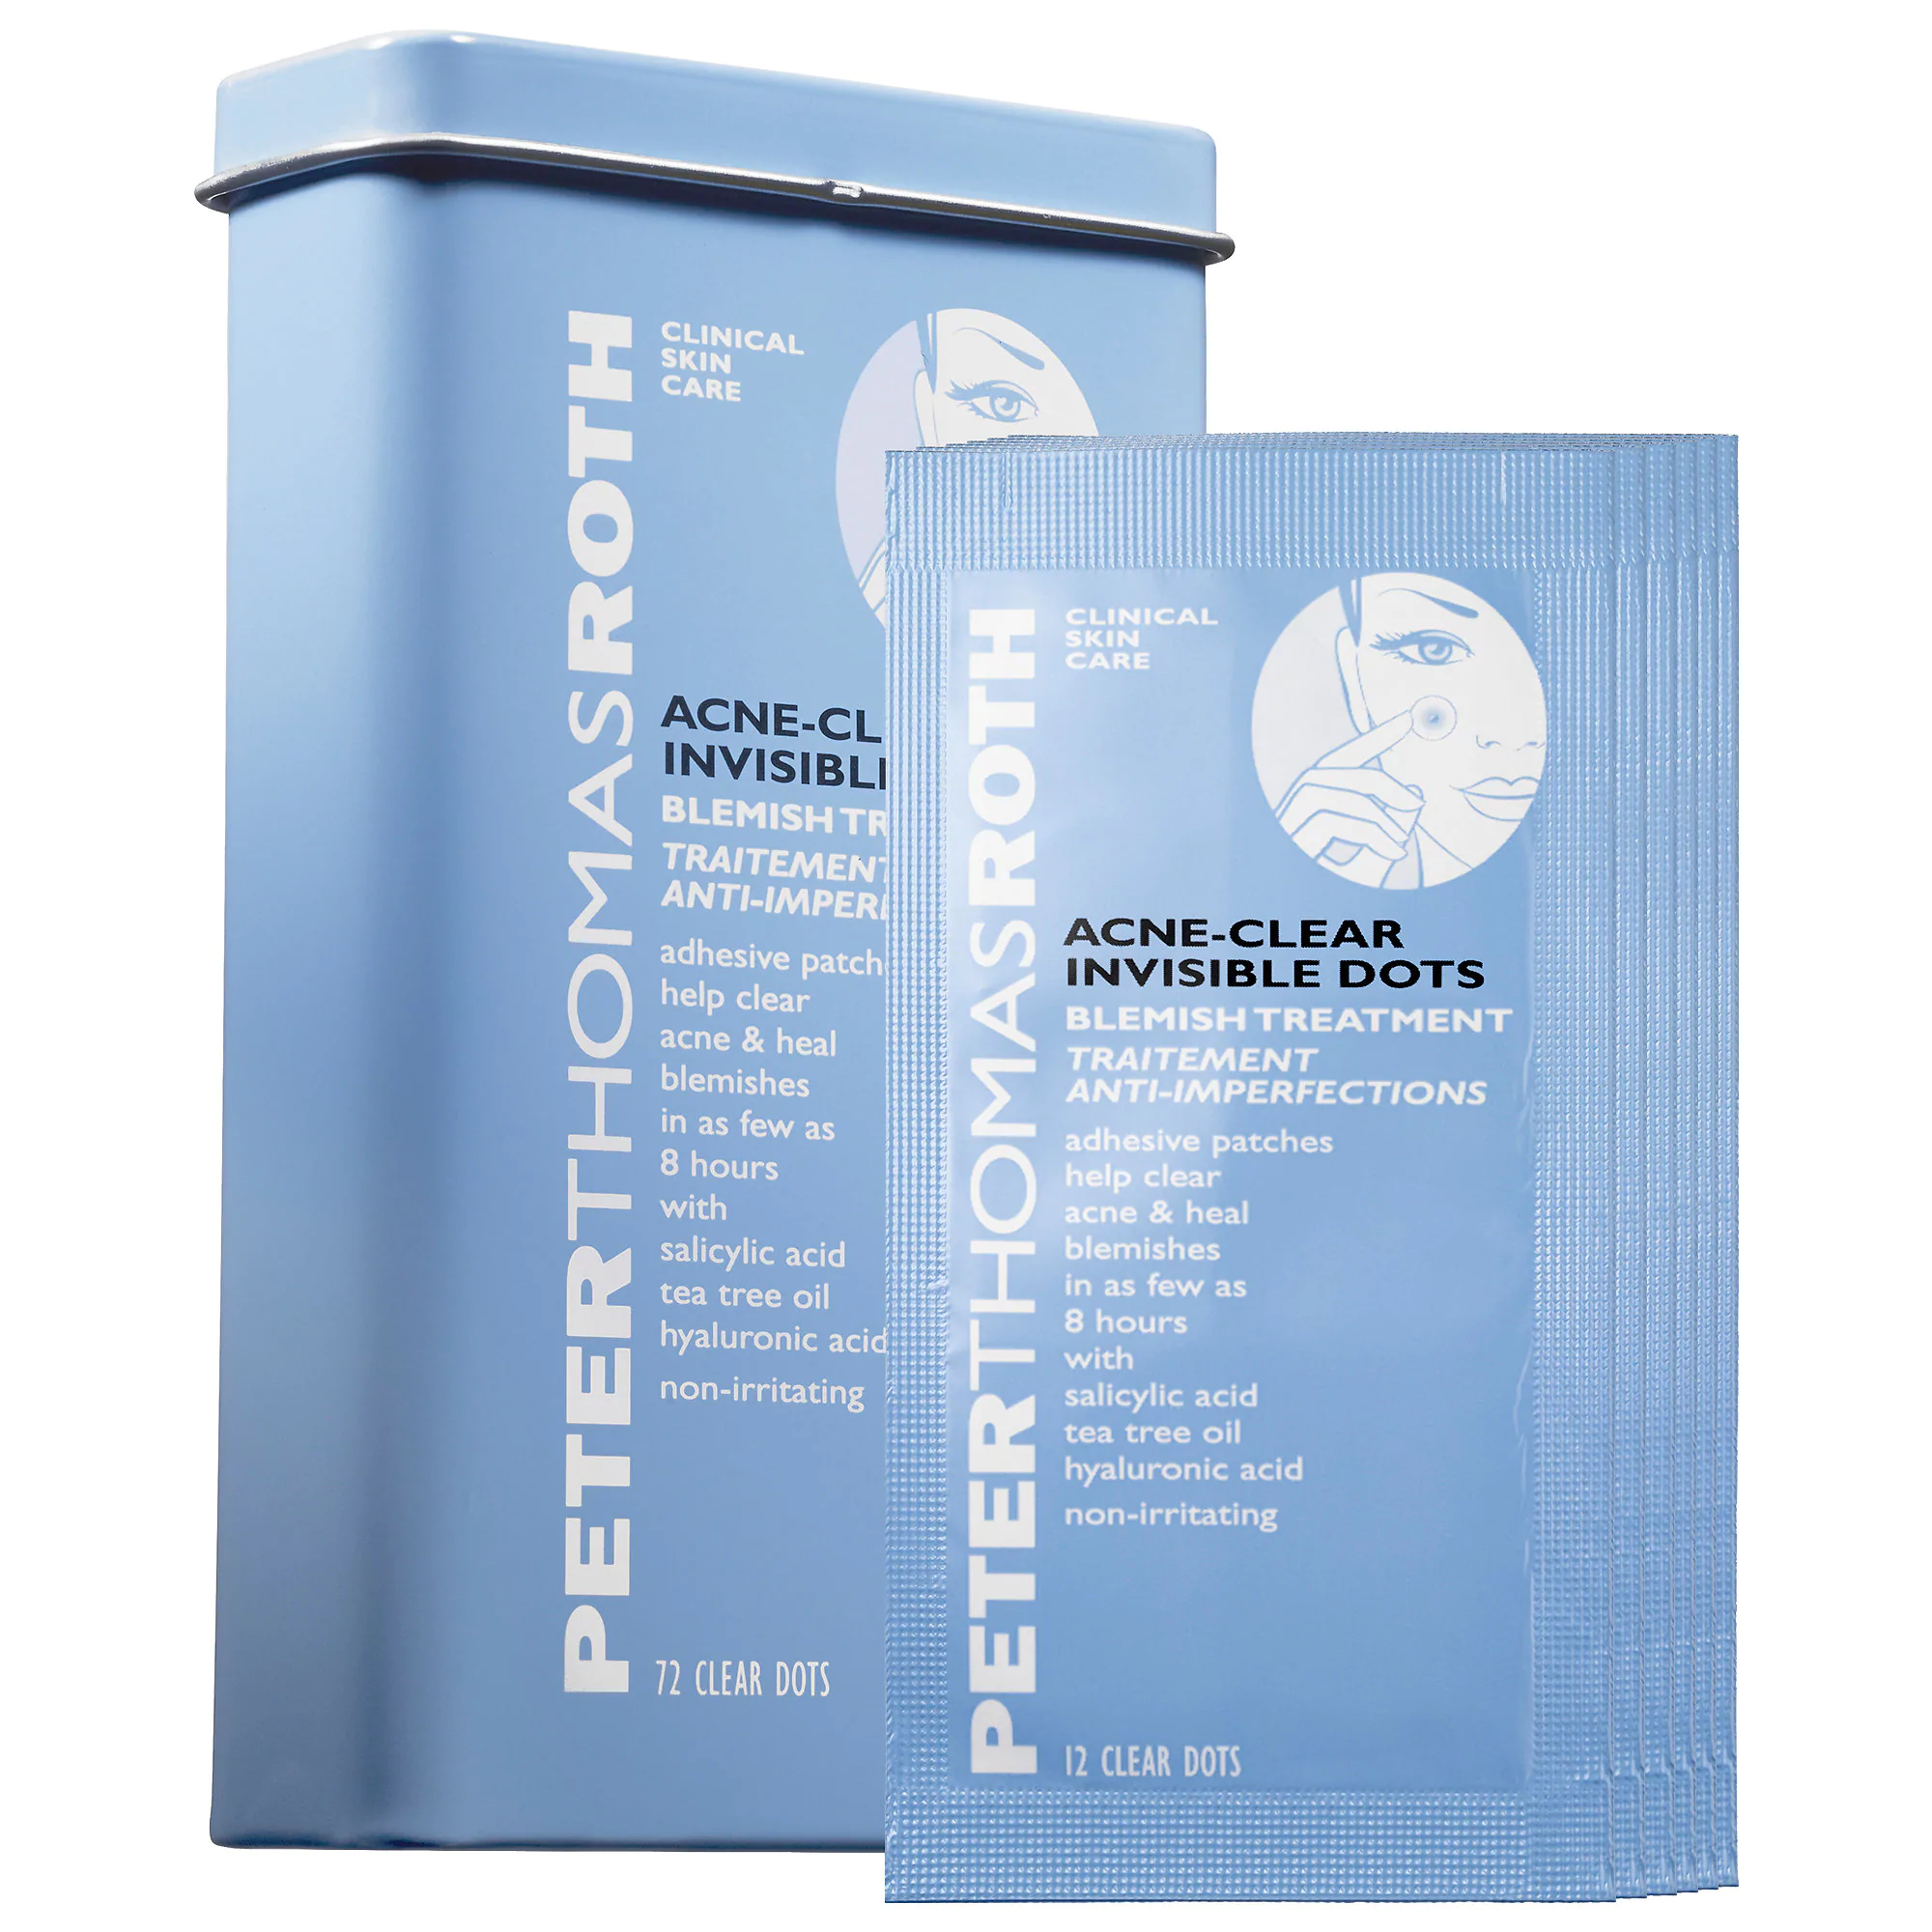 Peter Thomas Roth-Acne-Clear Invisible Dots